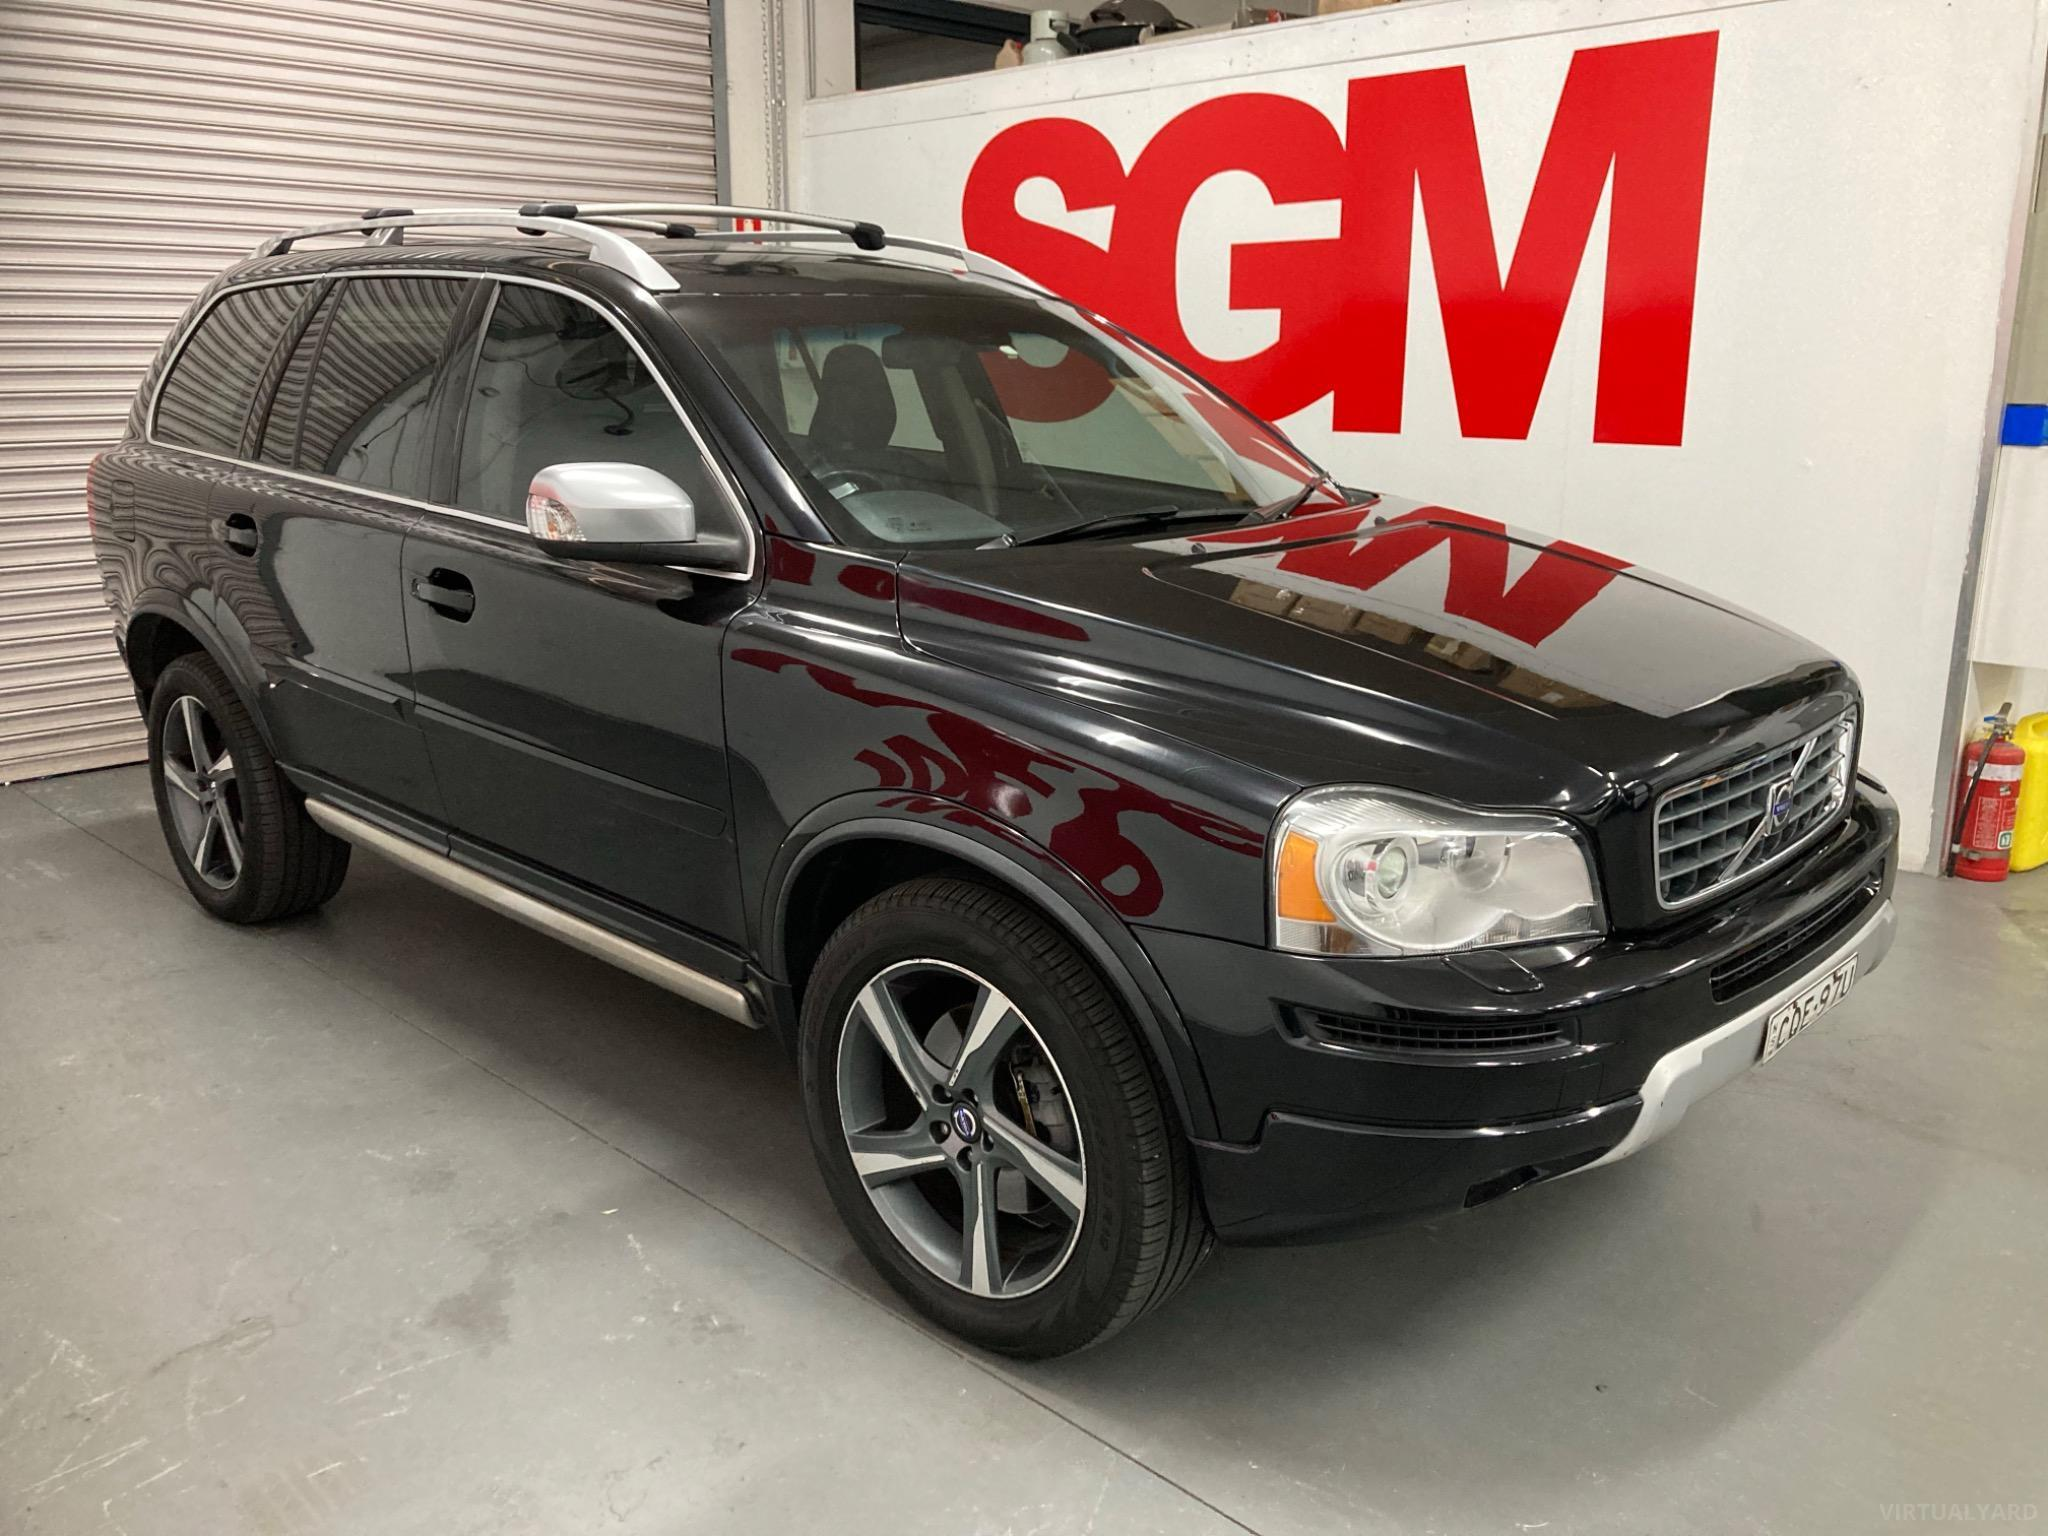 2013 Volvo XC90 P28 R-Design Wagon 7st 4dr Geartronic 6sp 4x4 3.2i Picture 8